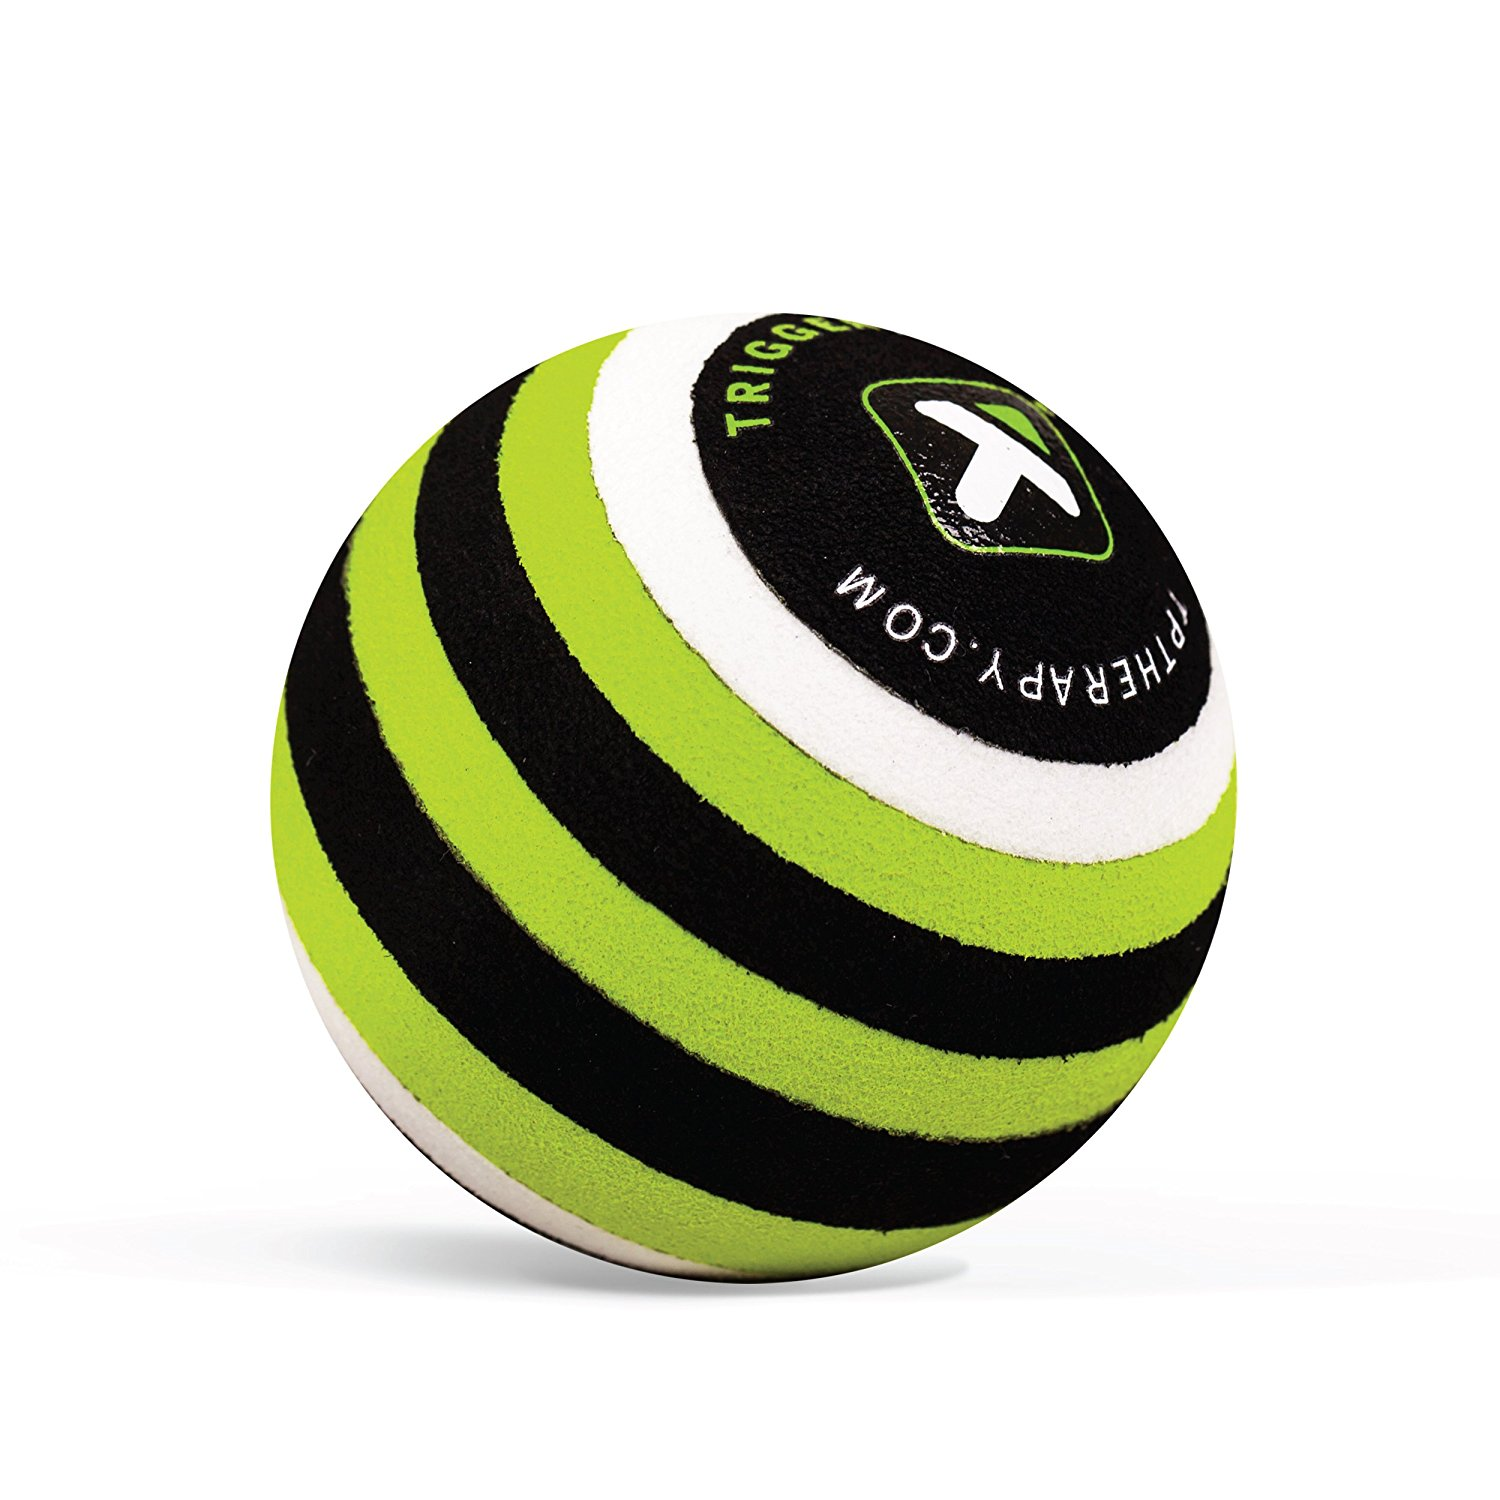 Trigger point ball to help with runners knee, IT band, shoulder pain and other chiropractic and muscle problems.